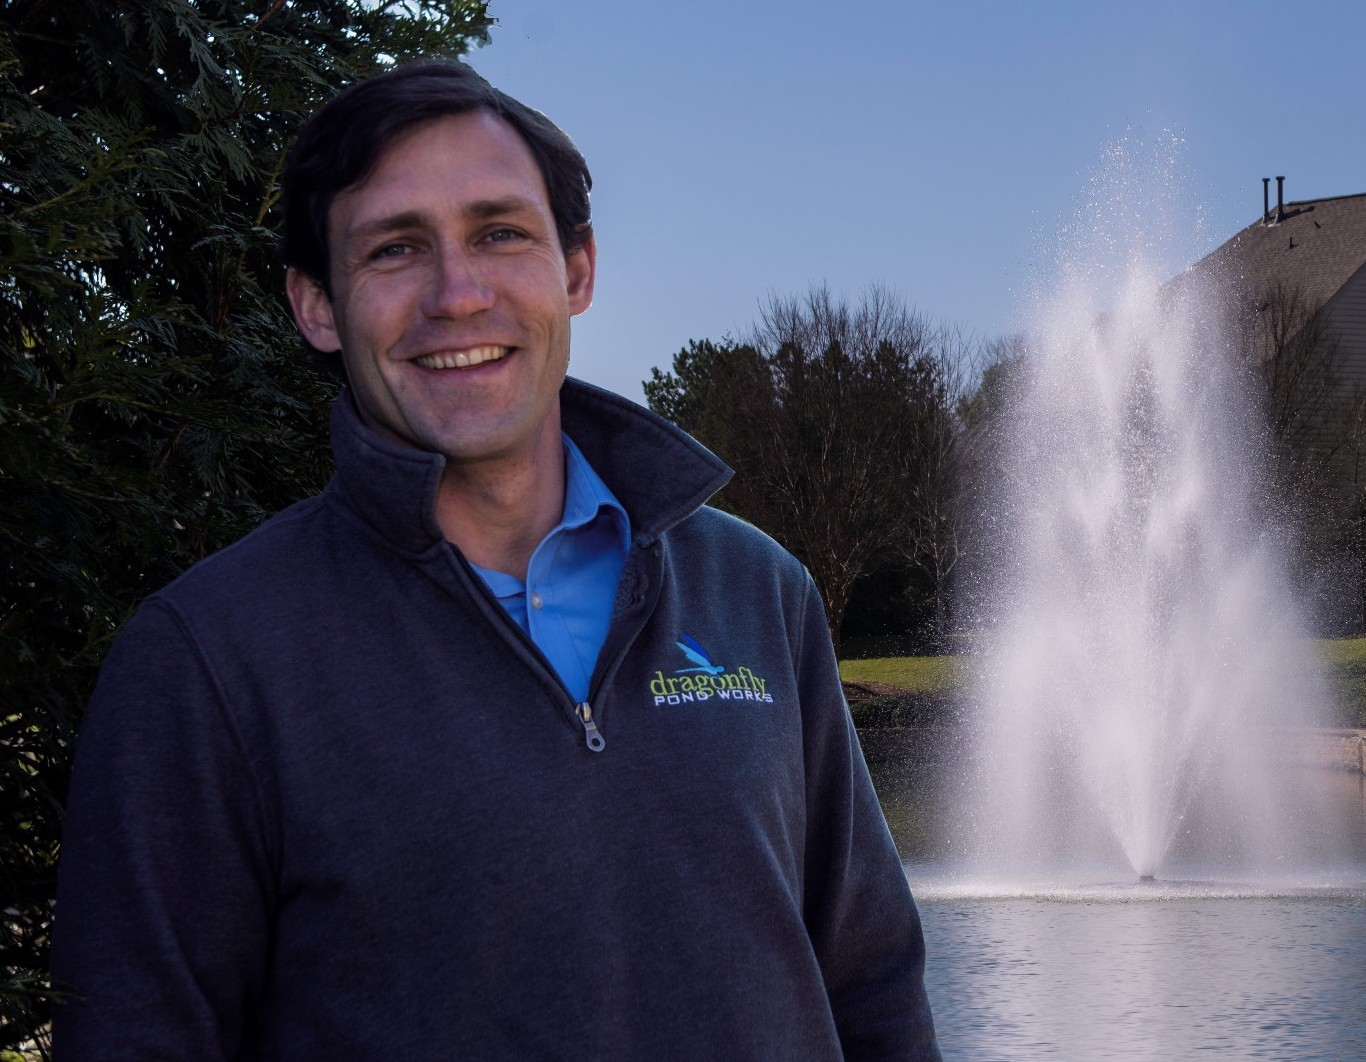 Dragonfly Pond Works triples business with the help of landscaping business software.